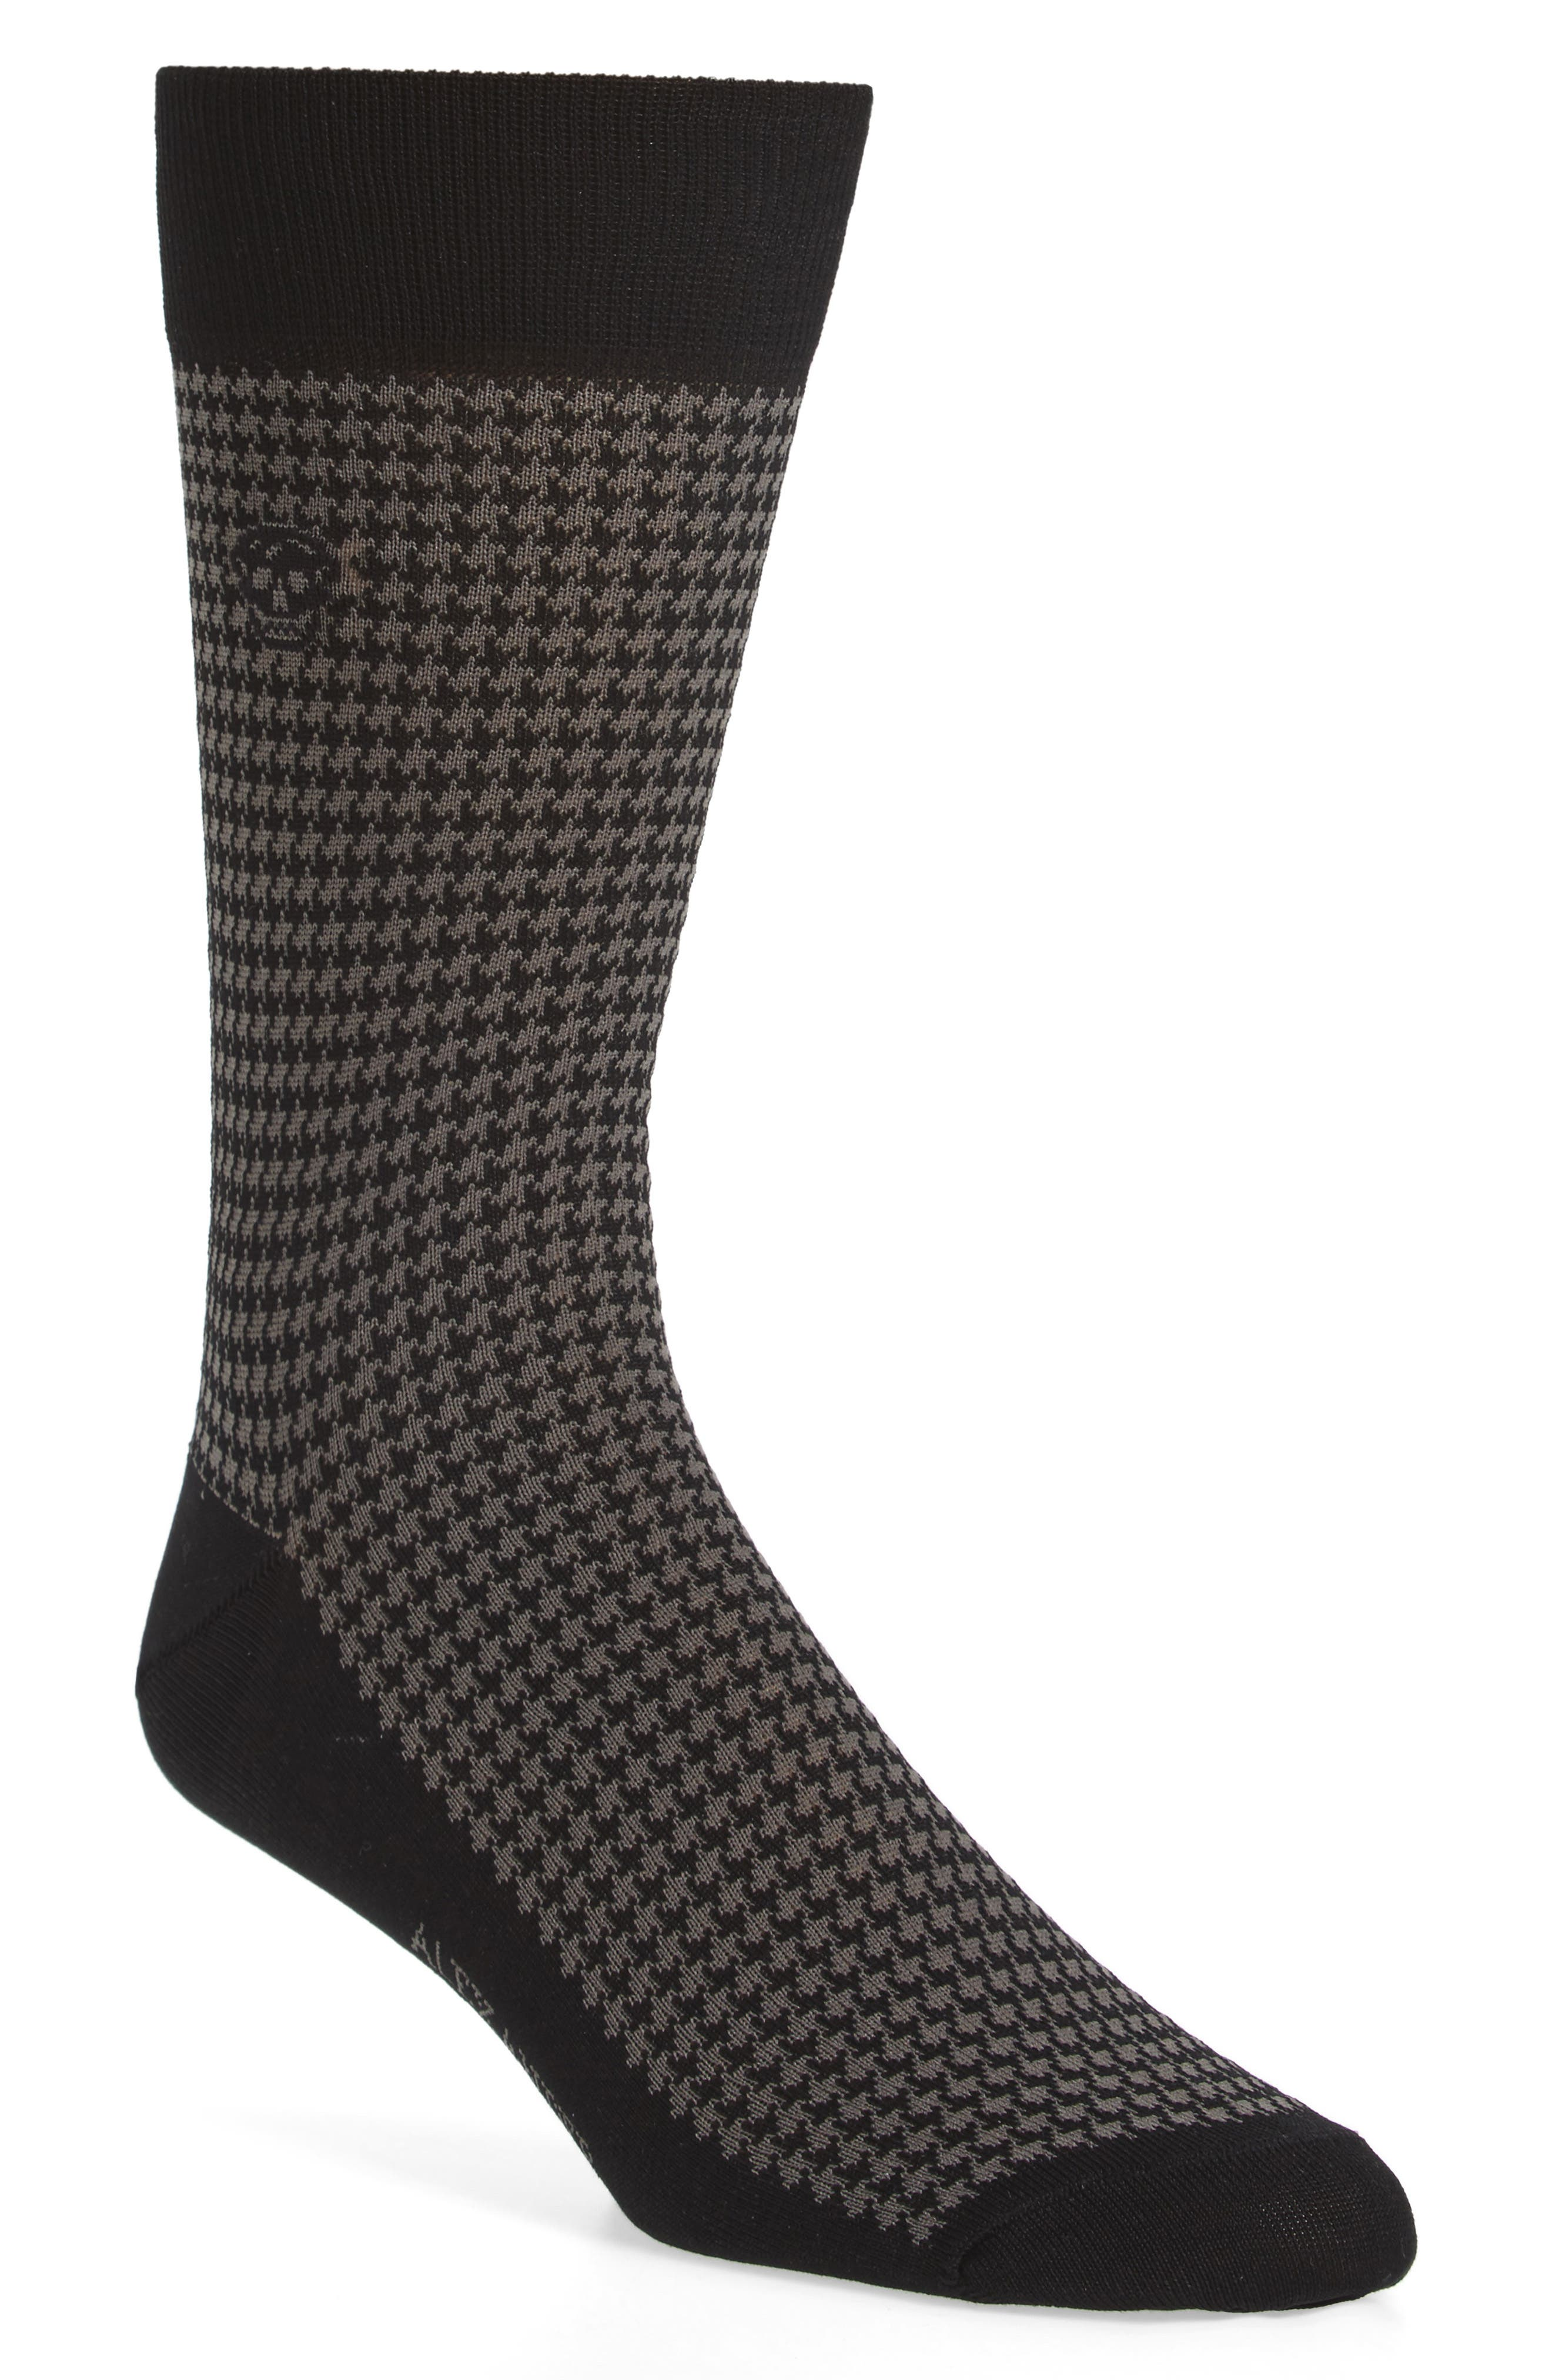 Cotton Blend Houndstooth Socks,                             Main thumbnail 1, color,                             Black/ Dark Grey